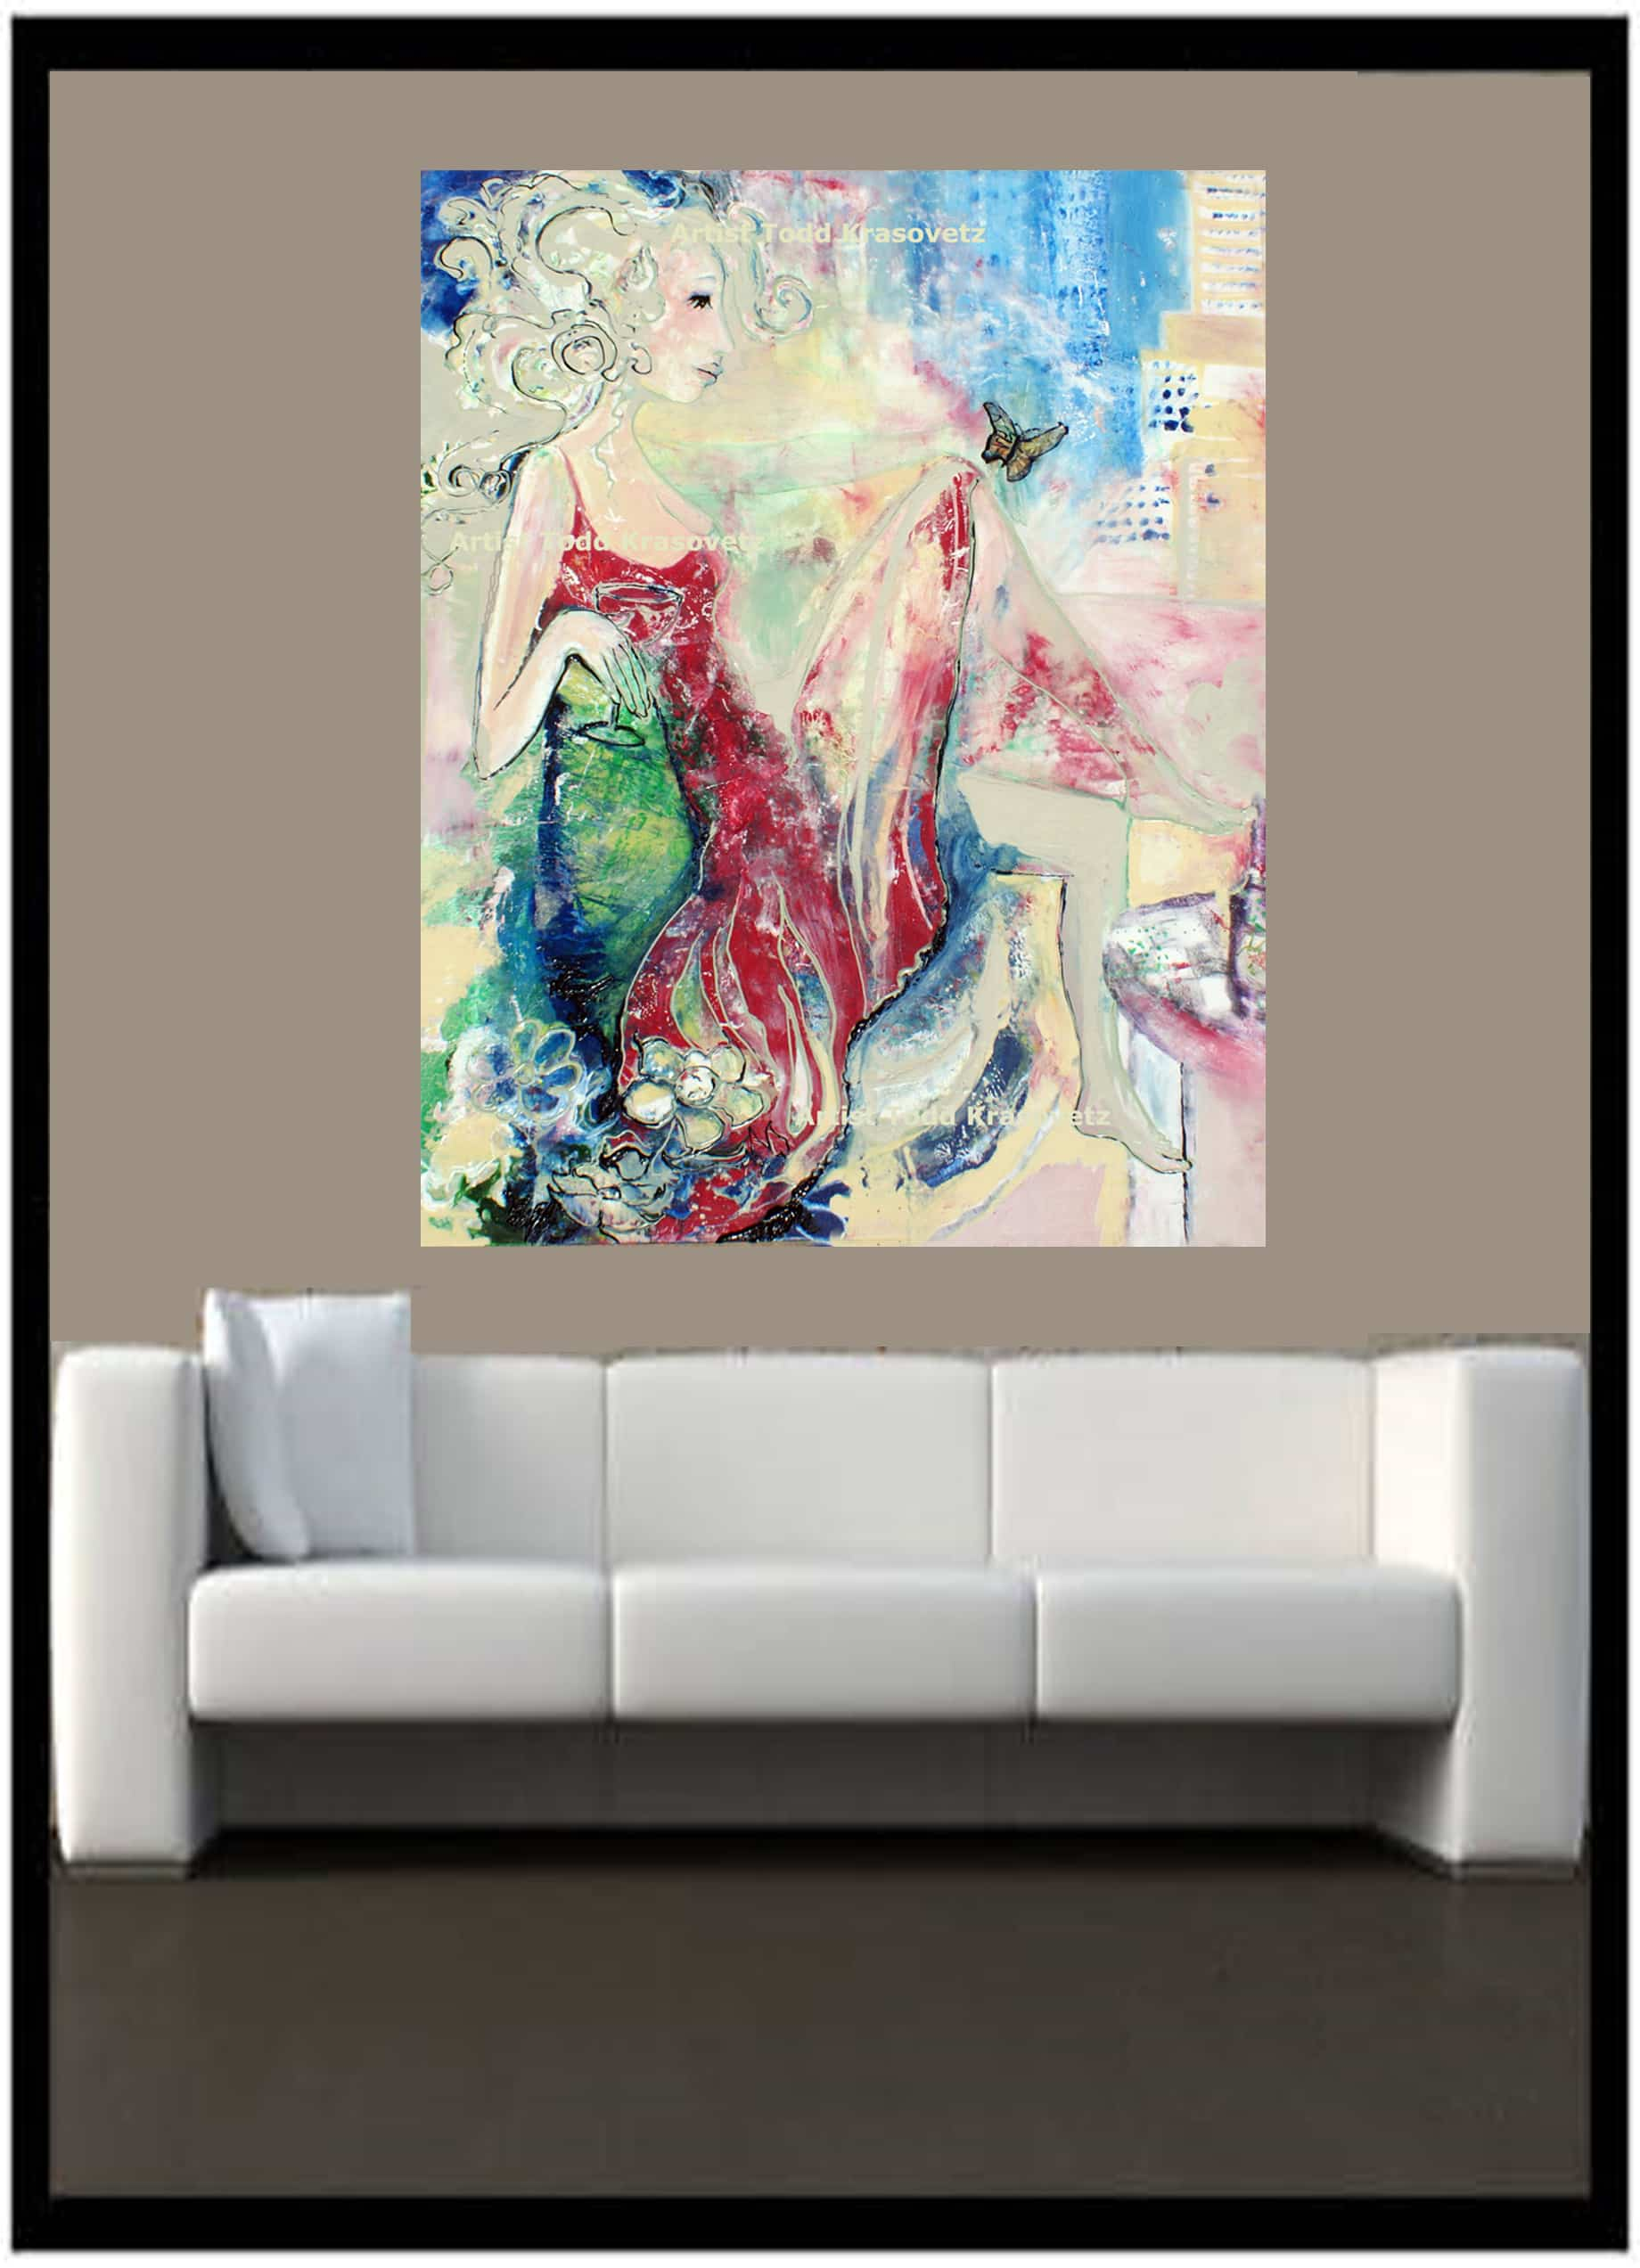 Contemporary Art Oil On Canvas 48 x 60 inches Titled Woman in a Red Dress and Butterfly by Artist Todd Krasovetz